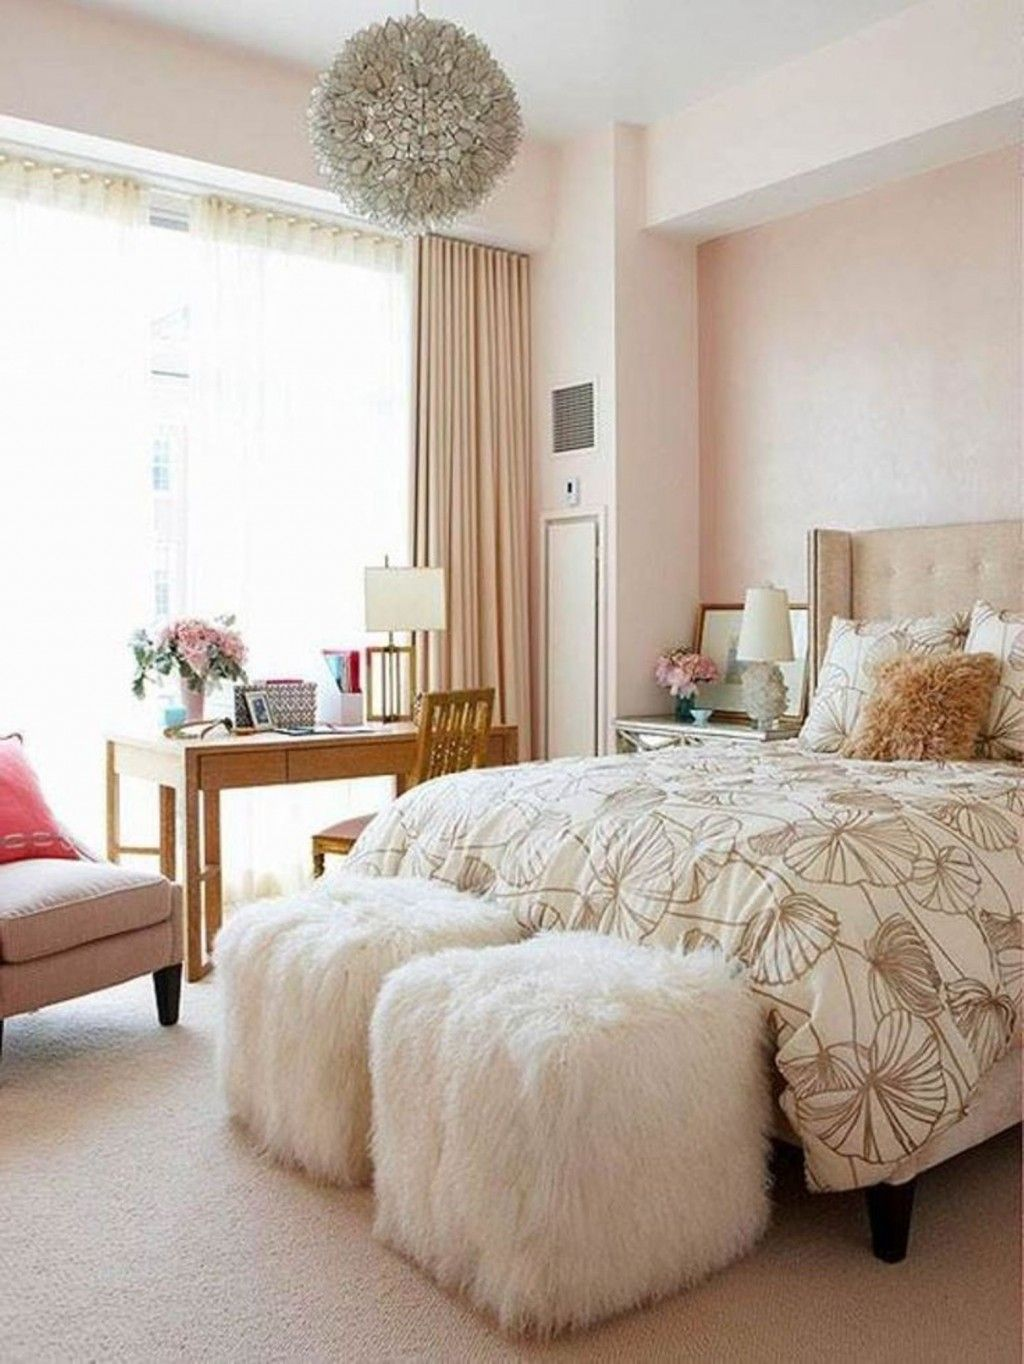 Beautiful bedroom inspiration via Repostudio.